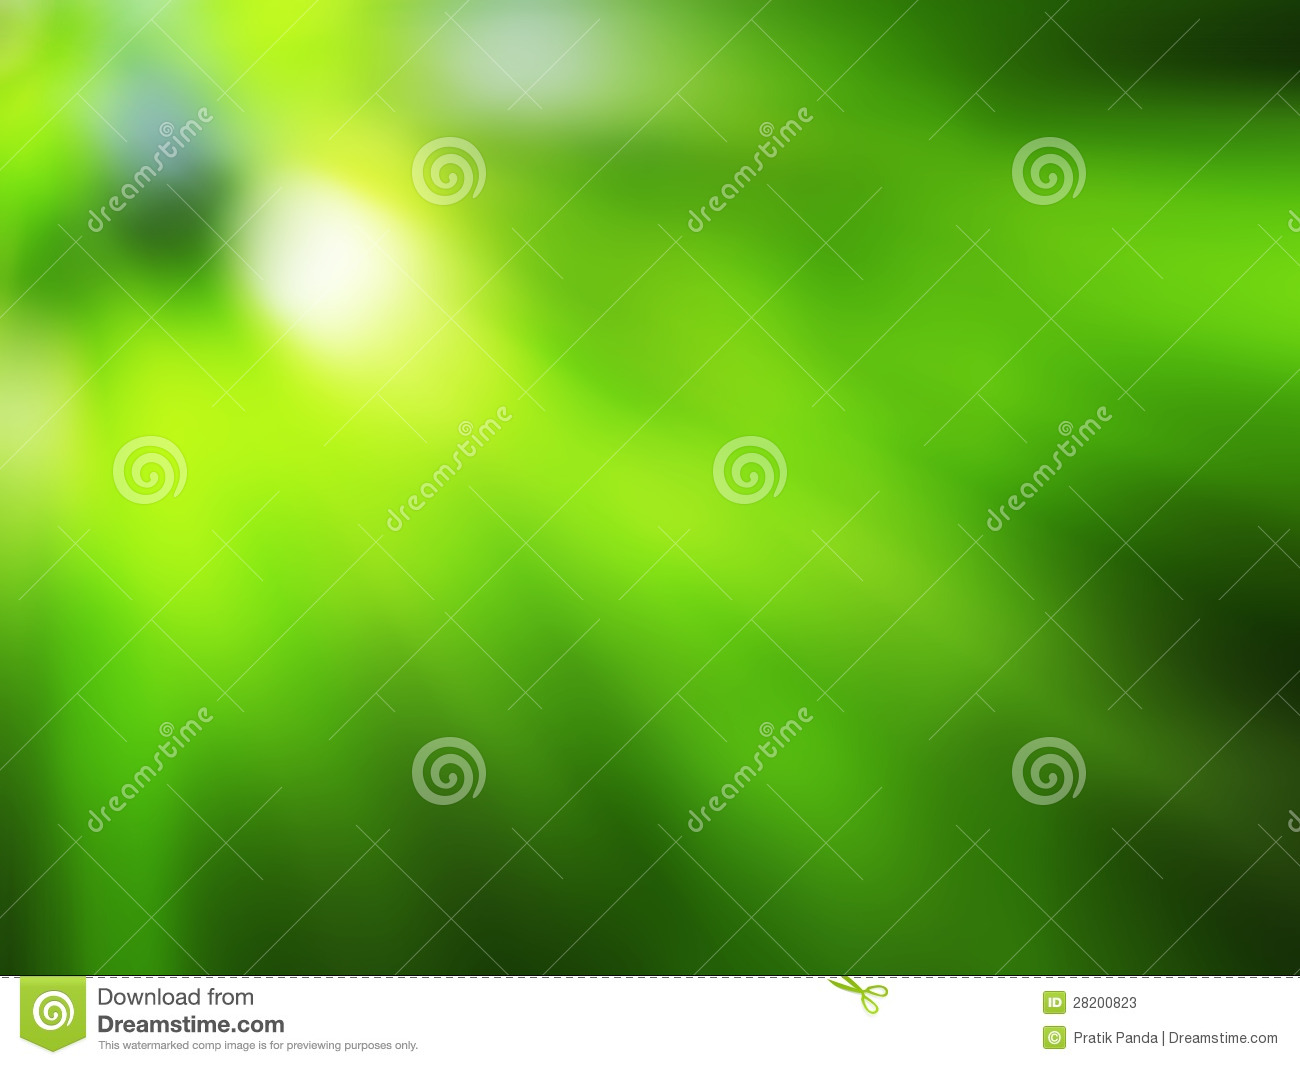 Green background with blurred rays